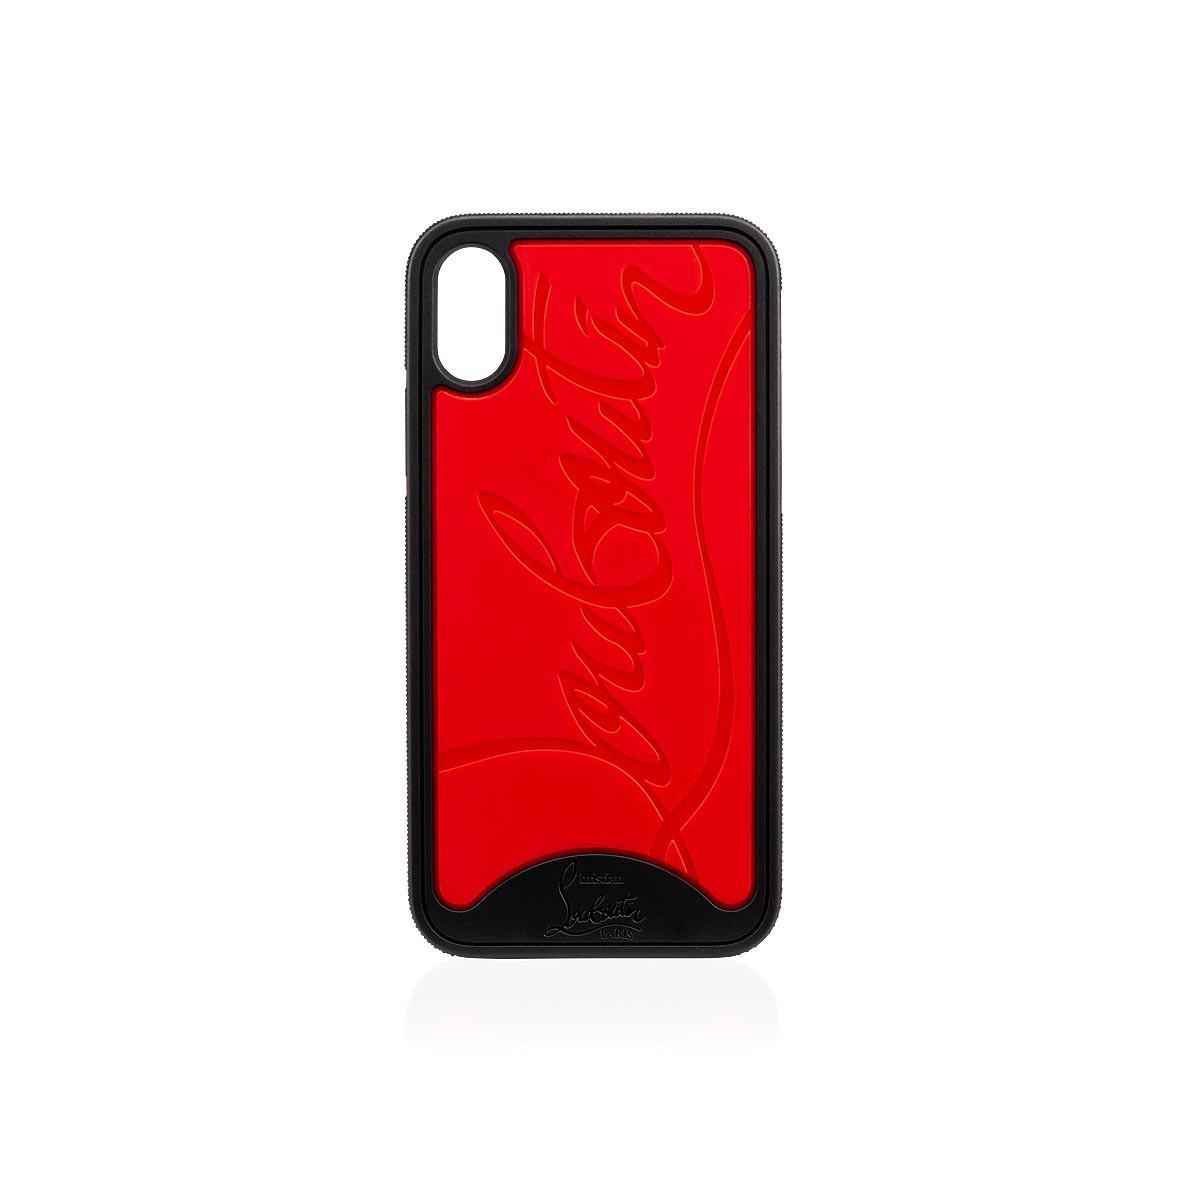 3a66a40d744d Lyst - Christian Louboutin Iphone X Loubiphone in Red - Save 24%